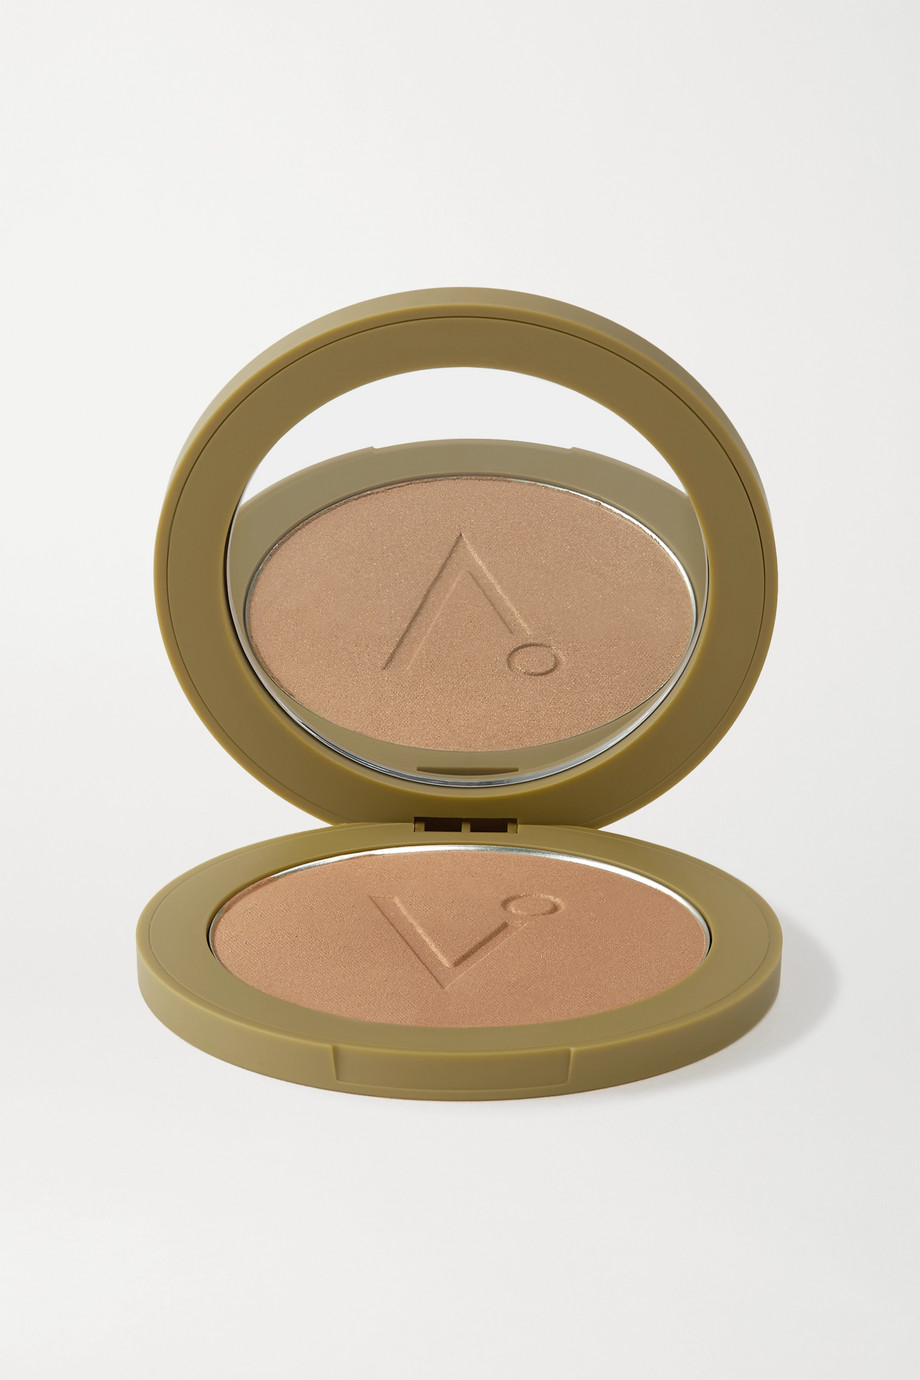 Vapour Beauty Bronzing Powder - Eclipse